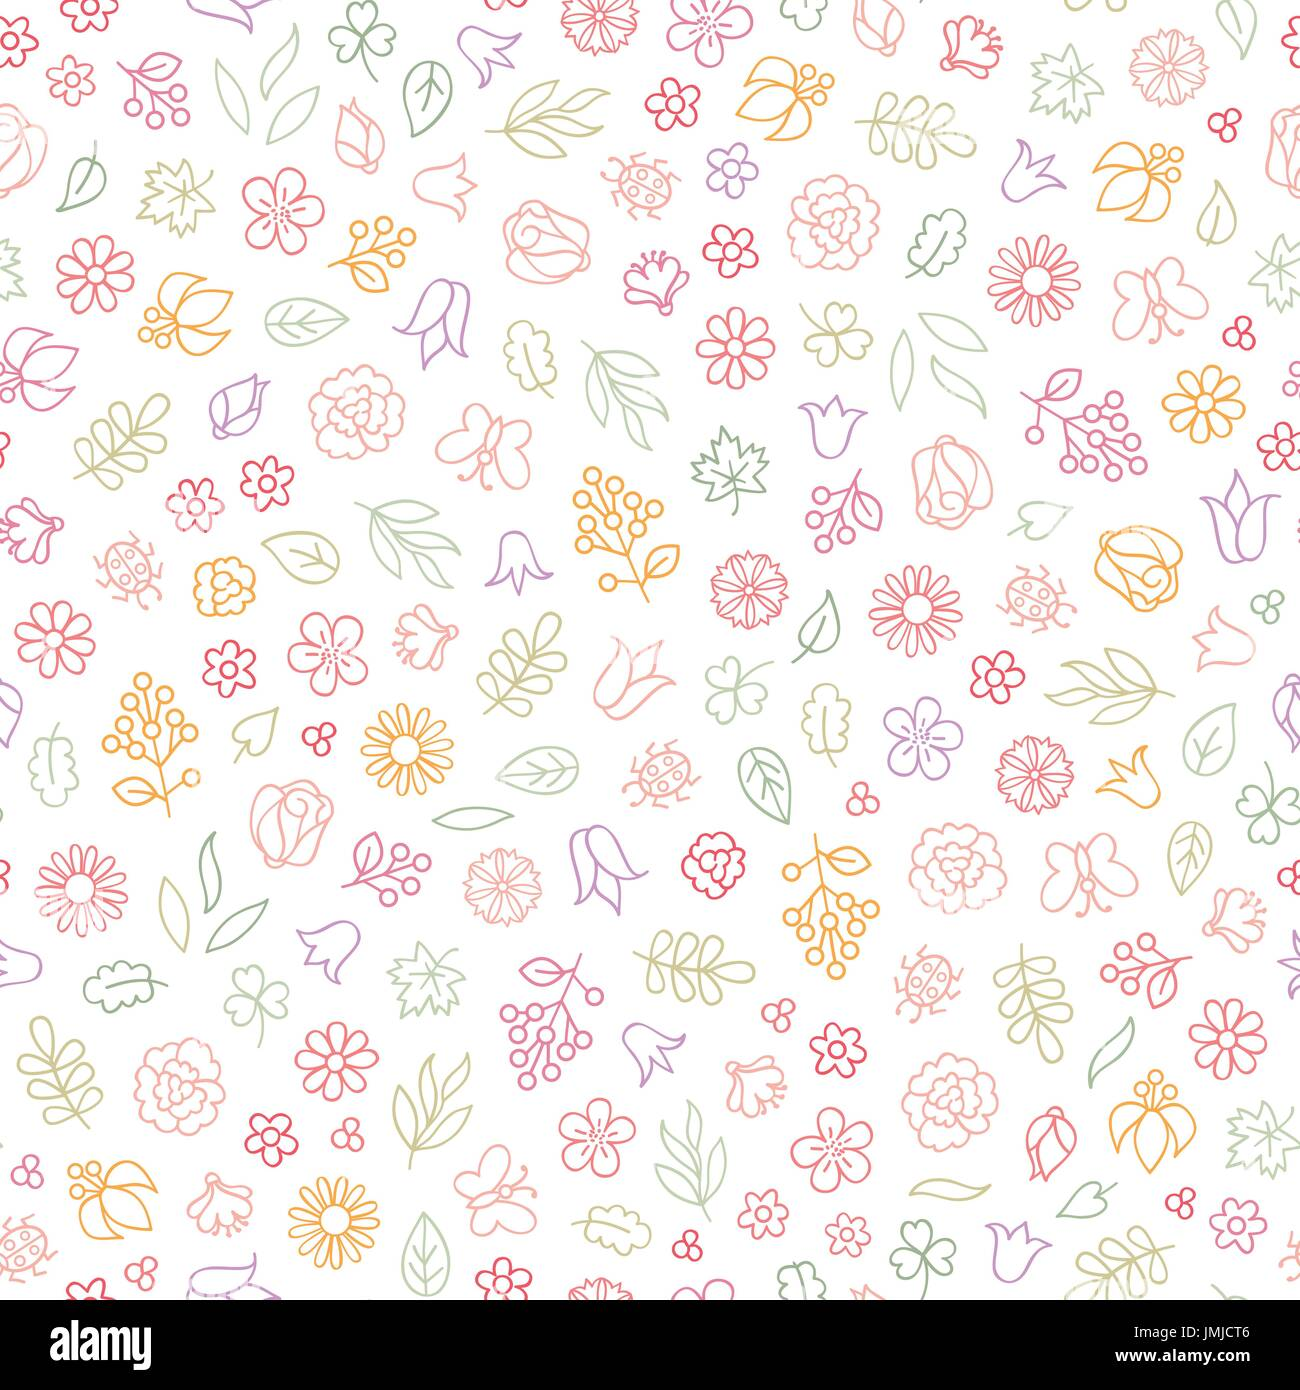 Flower icon seamless pattern. Floral leaves, flowers. Summer ornamental background - Stock Vector